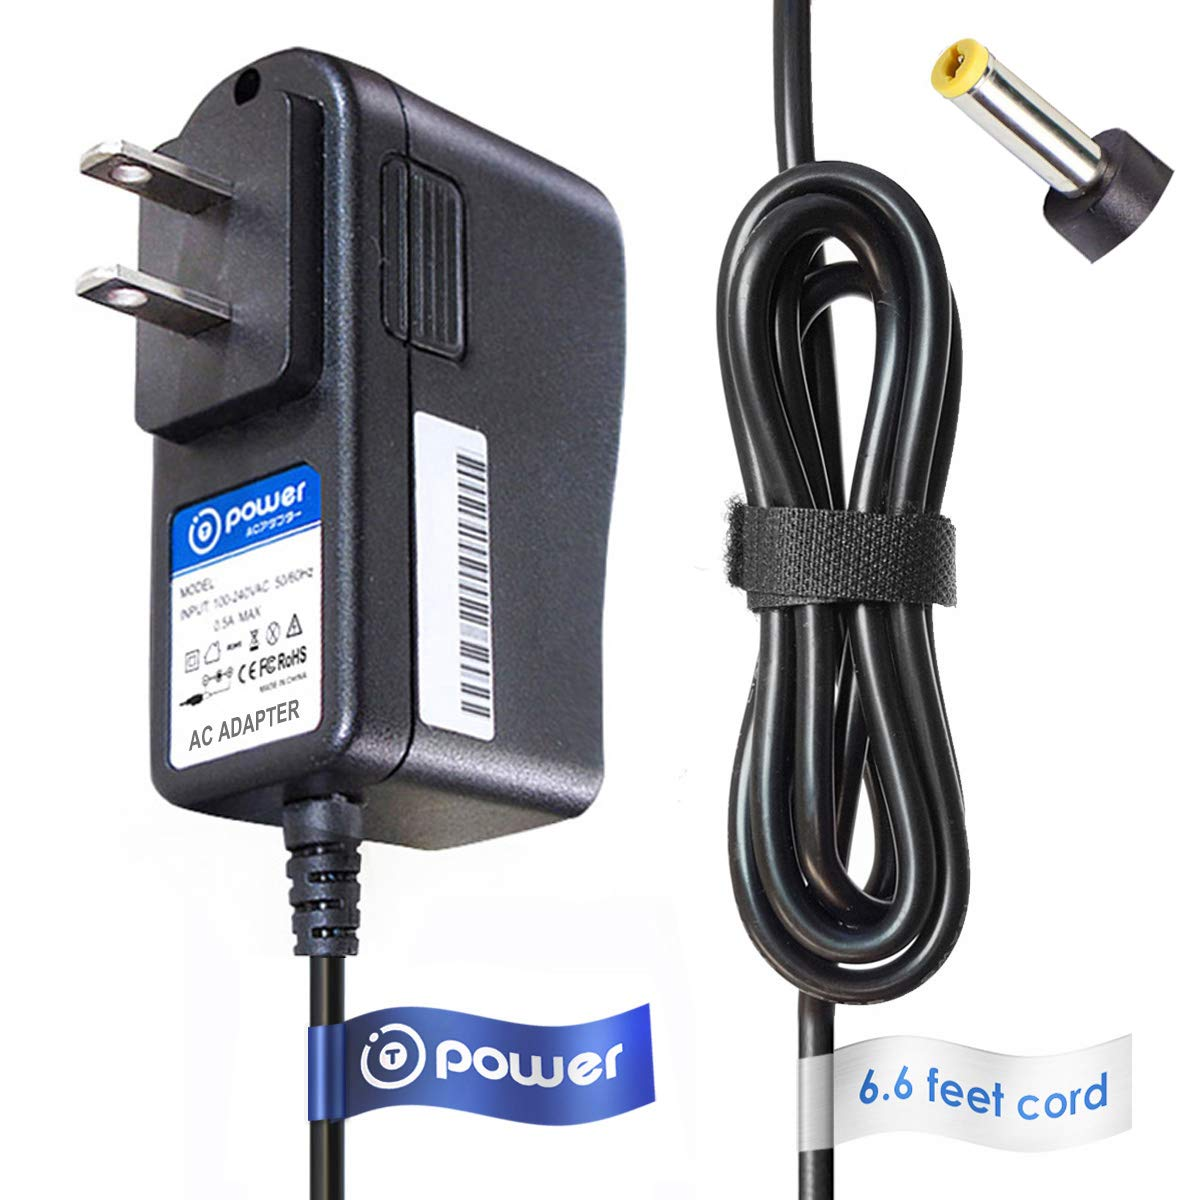 T-Power Ac Adapter (6.6ft Cable) for 5VDC For BOSE Acoustic Wave Connect Dock Kit Model 97PS-030 P/N 316720-001 Audio Video (THIS IS NOT 95PS-030-CD-1) Switching Power Supply Cord Charger